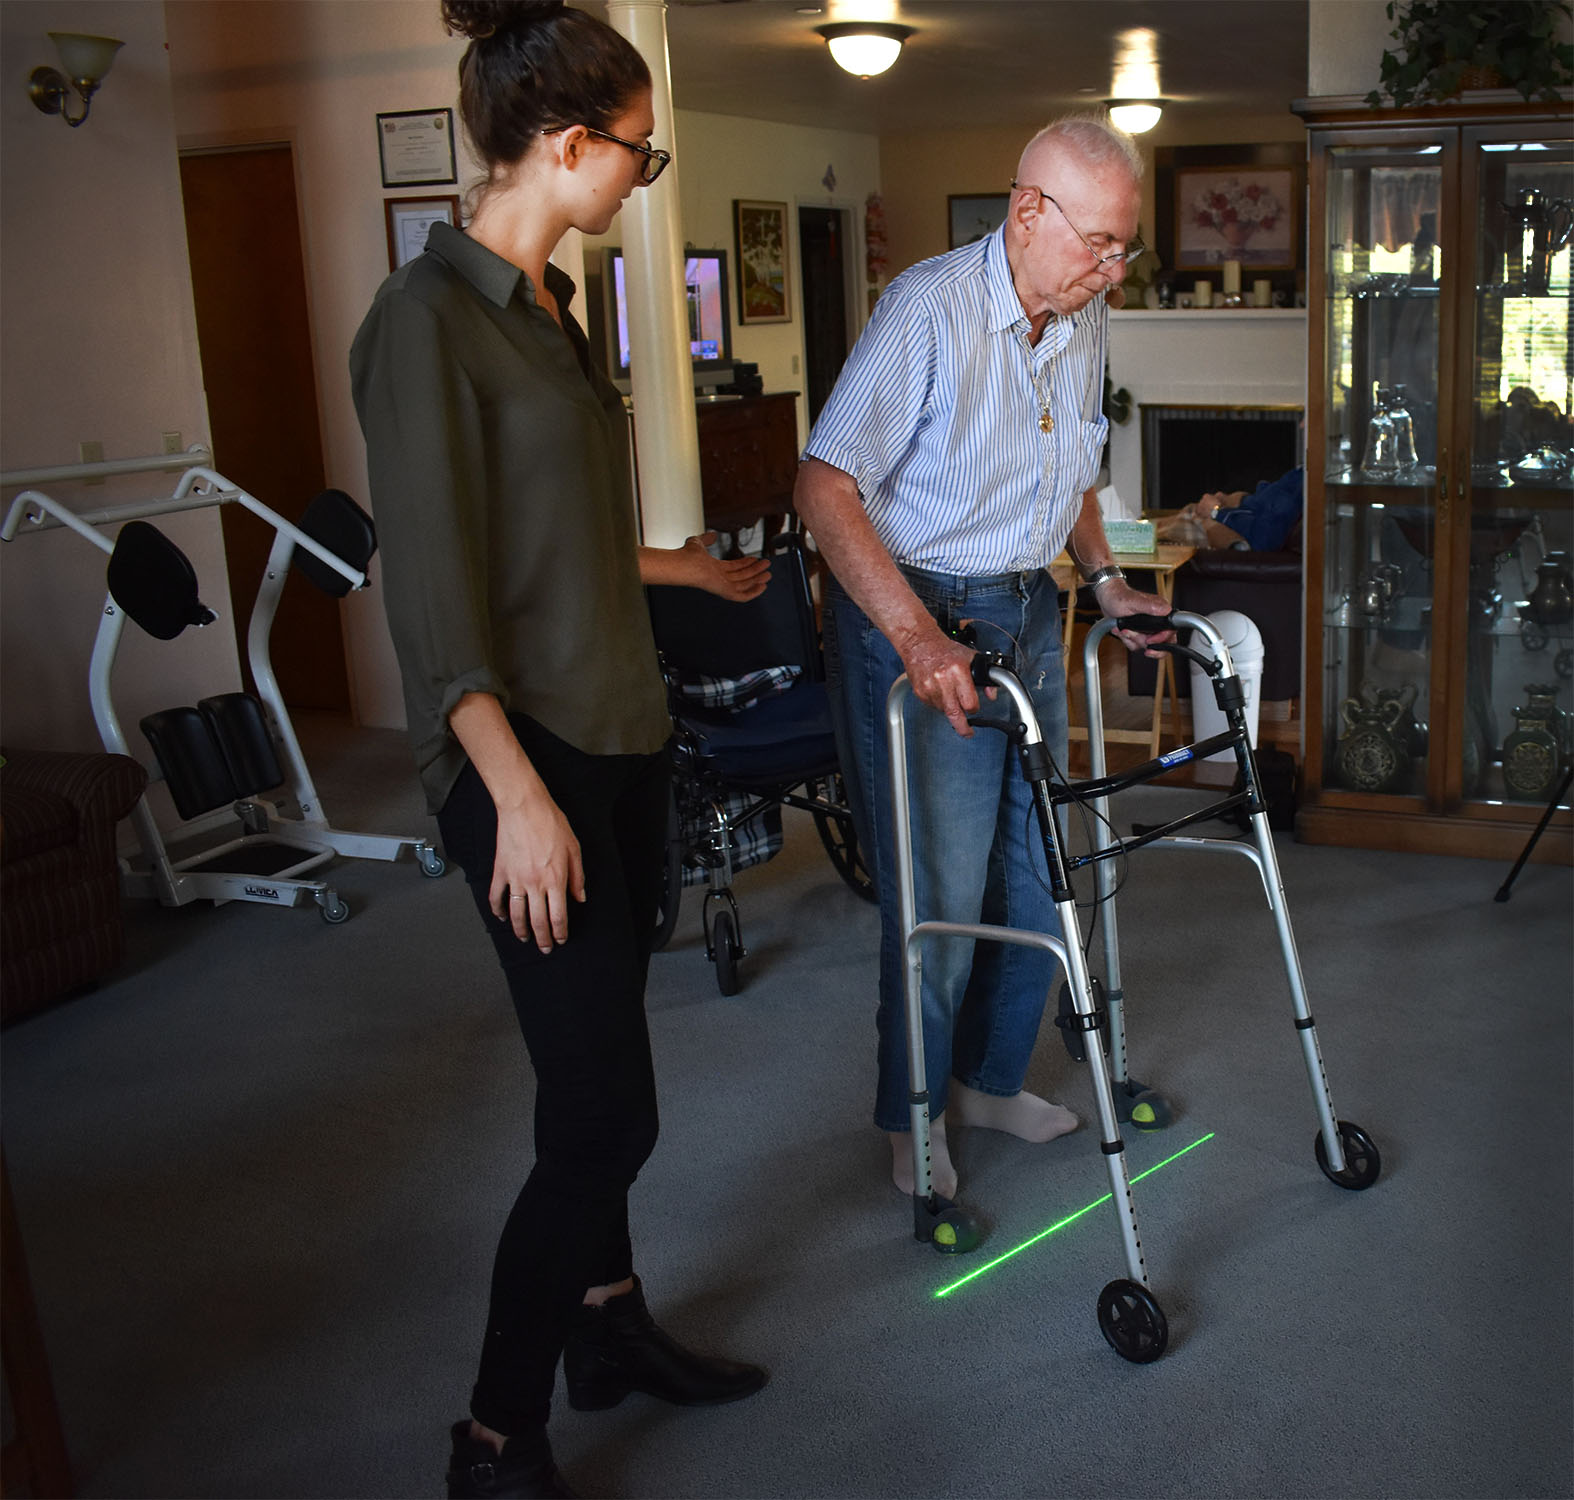 "Jack rill demonstrates how he uses the Gaitway, a device created by Collin to help patients with Parkinson's disease walk uninterrupted. The Gaitway is a battery-powered portable that attaches to walkers and canes and use visual and audio cues to interrupt the ""freezing of gait"" symptom that occurs in Parkinson's disease patients."